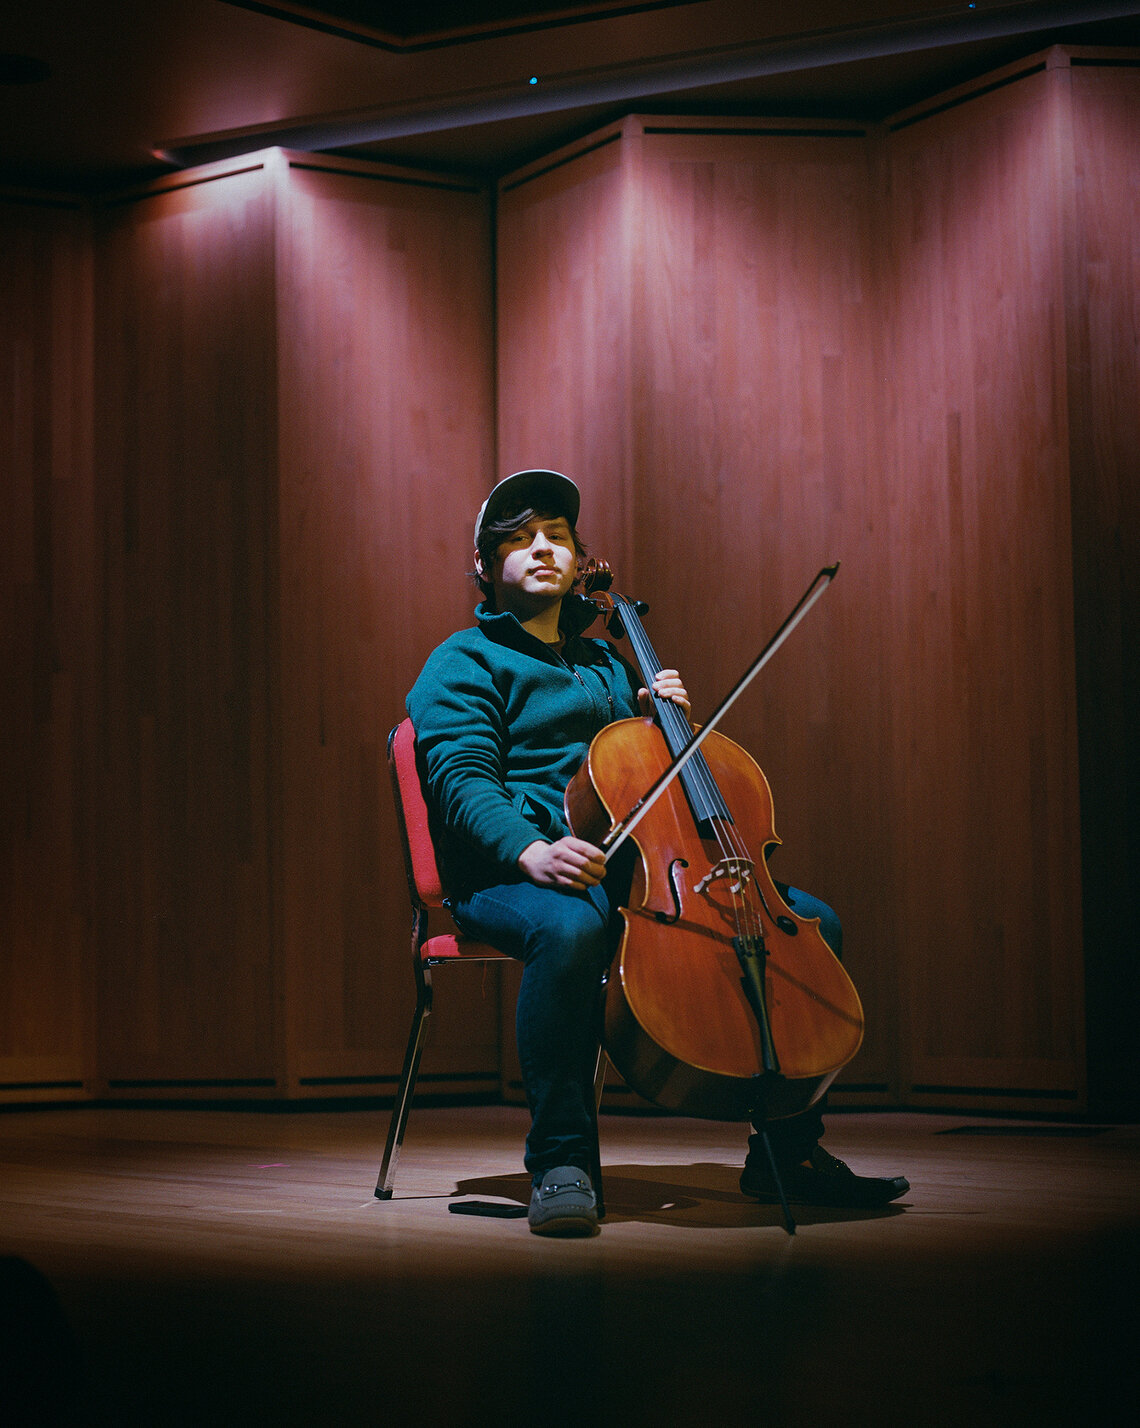 Jaime with his cello at the University of Alaska Anchorage's Recital Hall in April 2021.